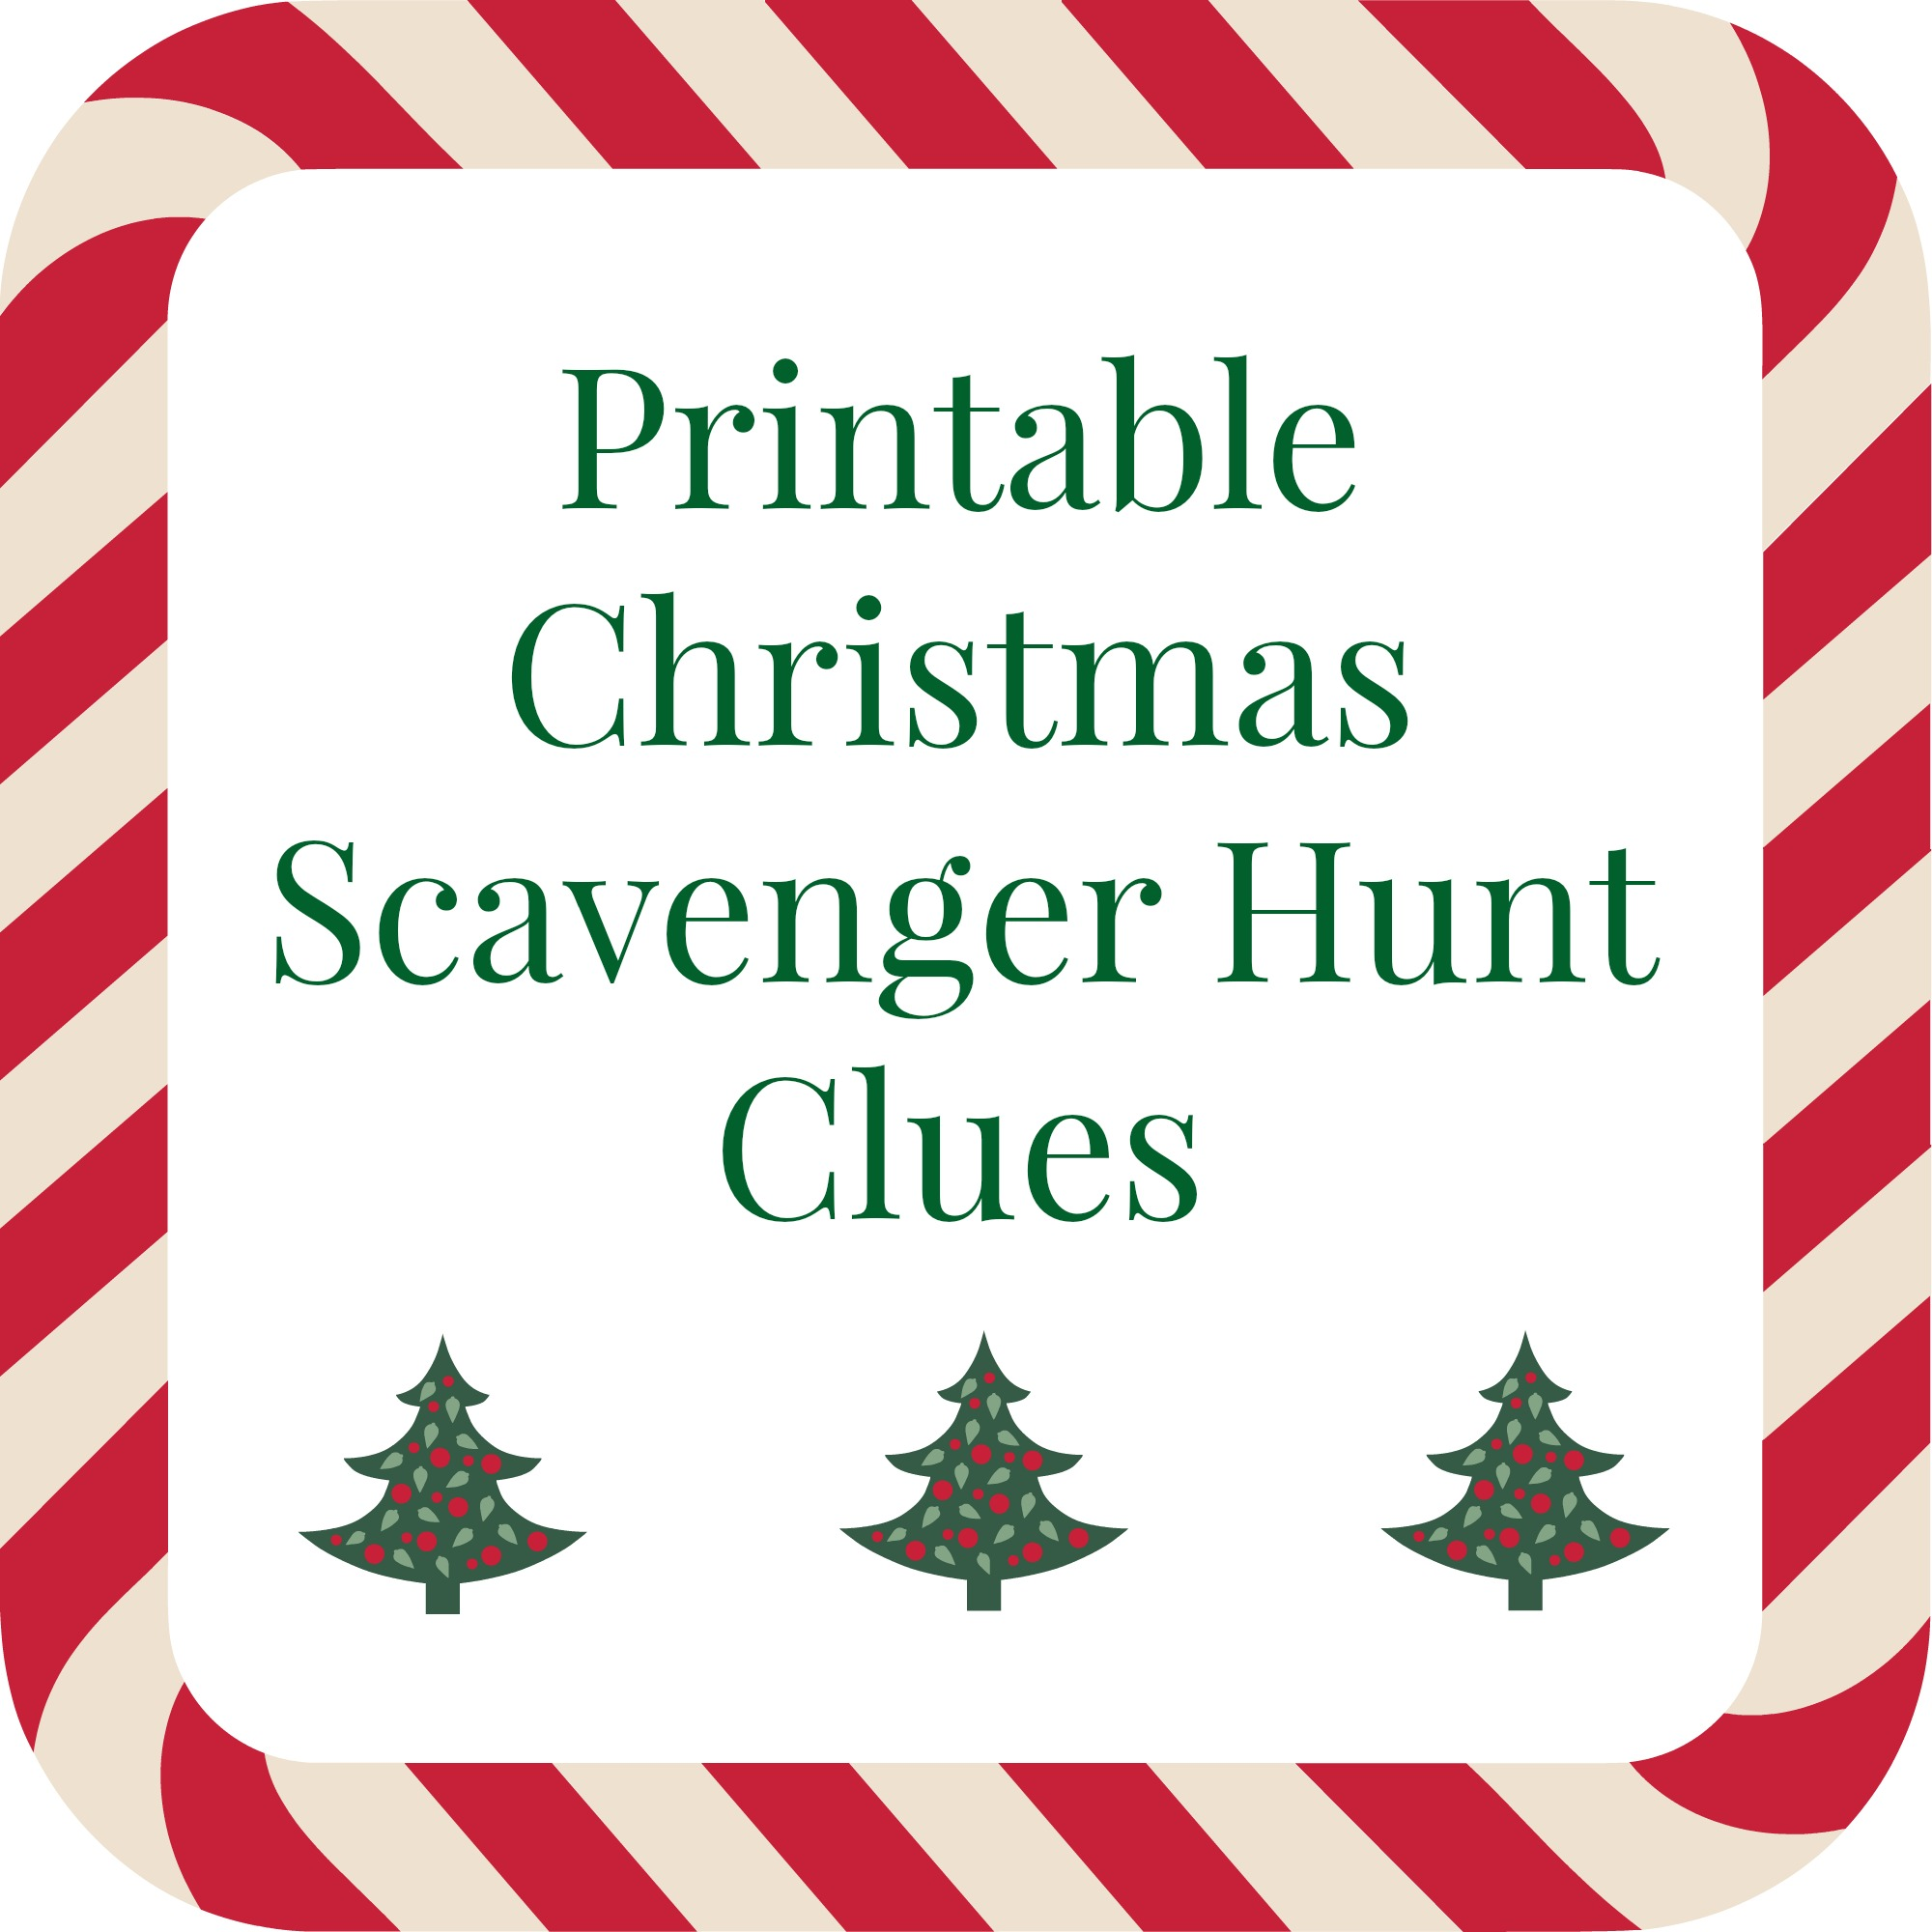 Printable Christmas Scavenger Hunt Clues For Present Finding Fun